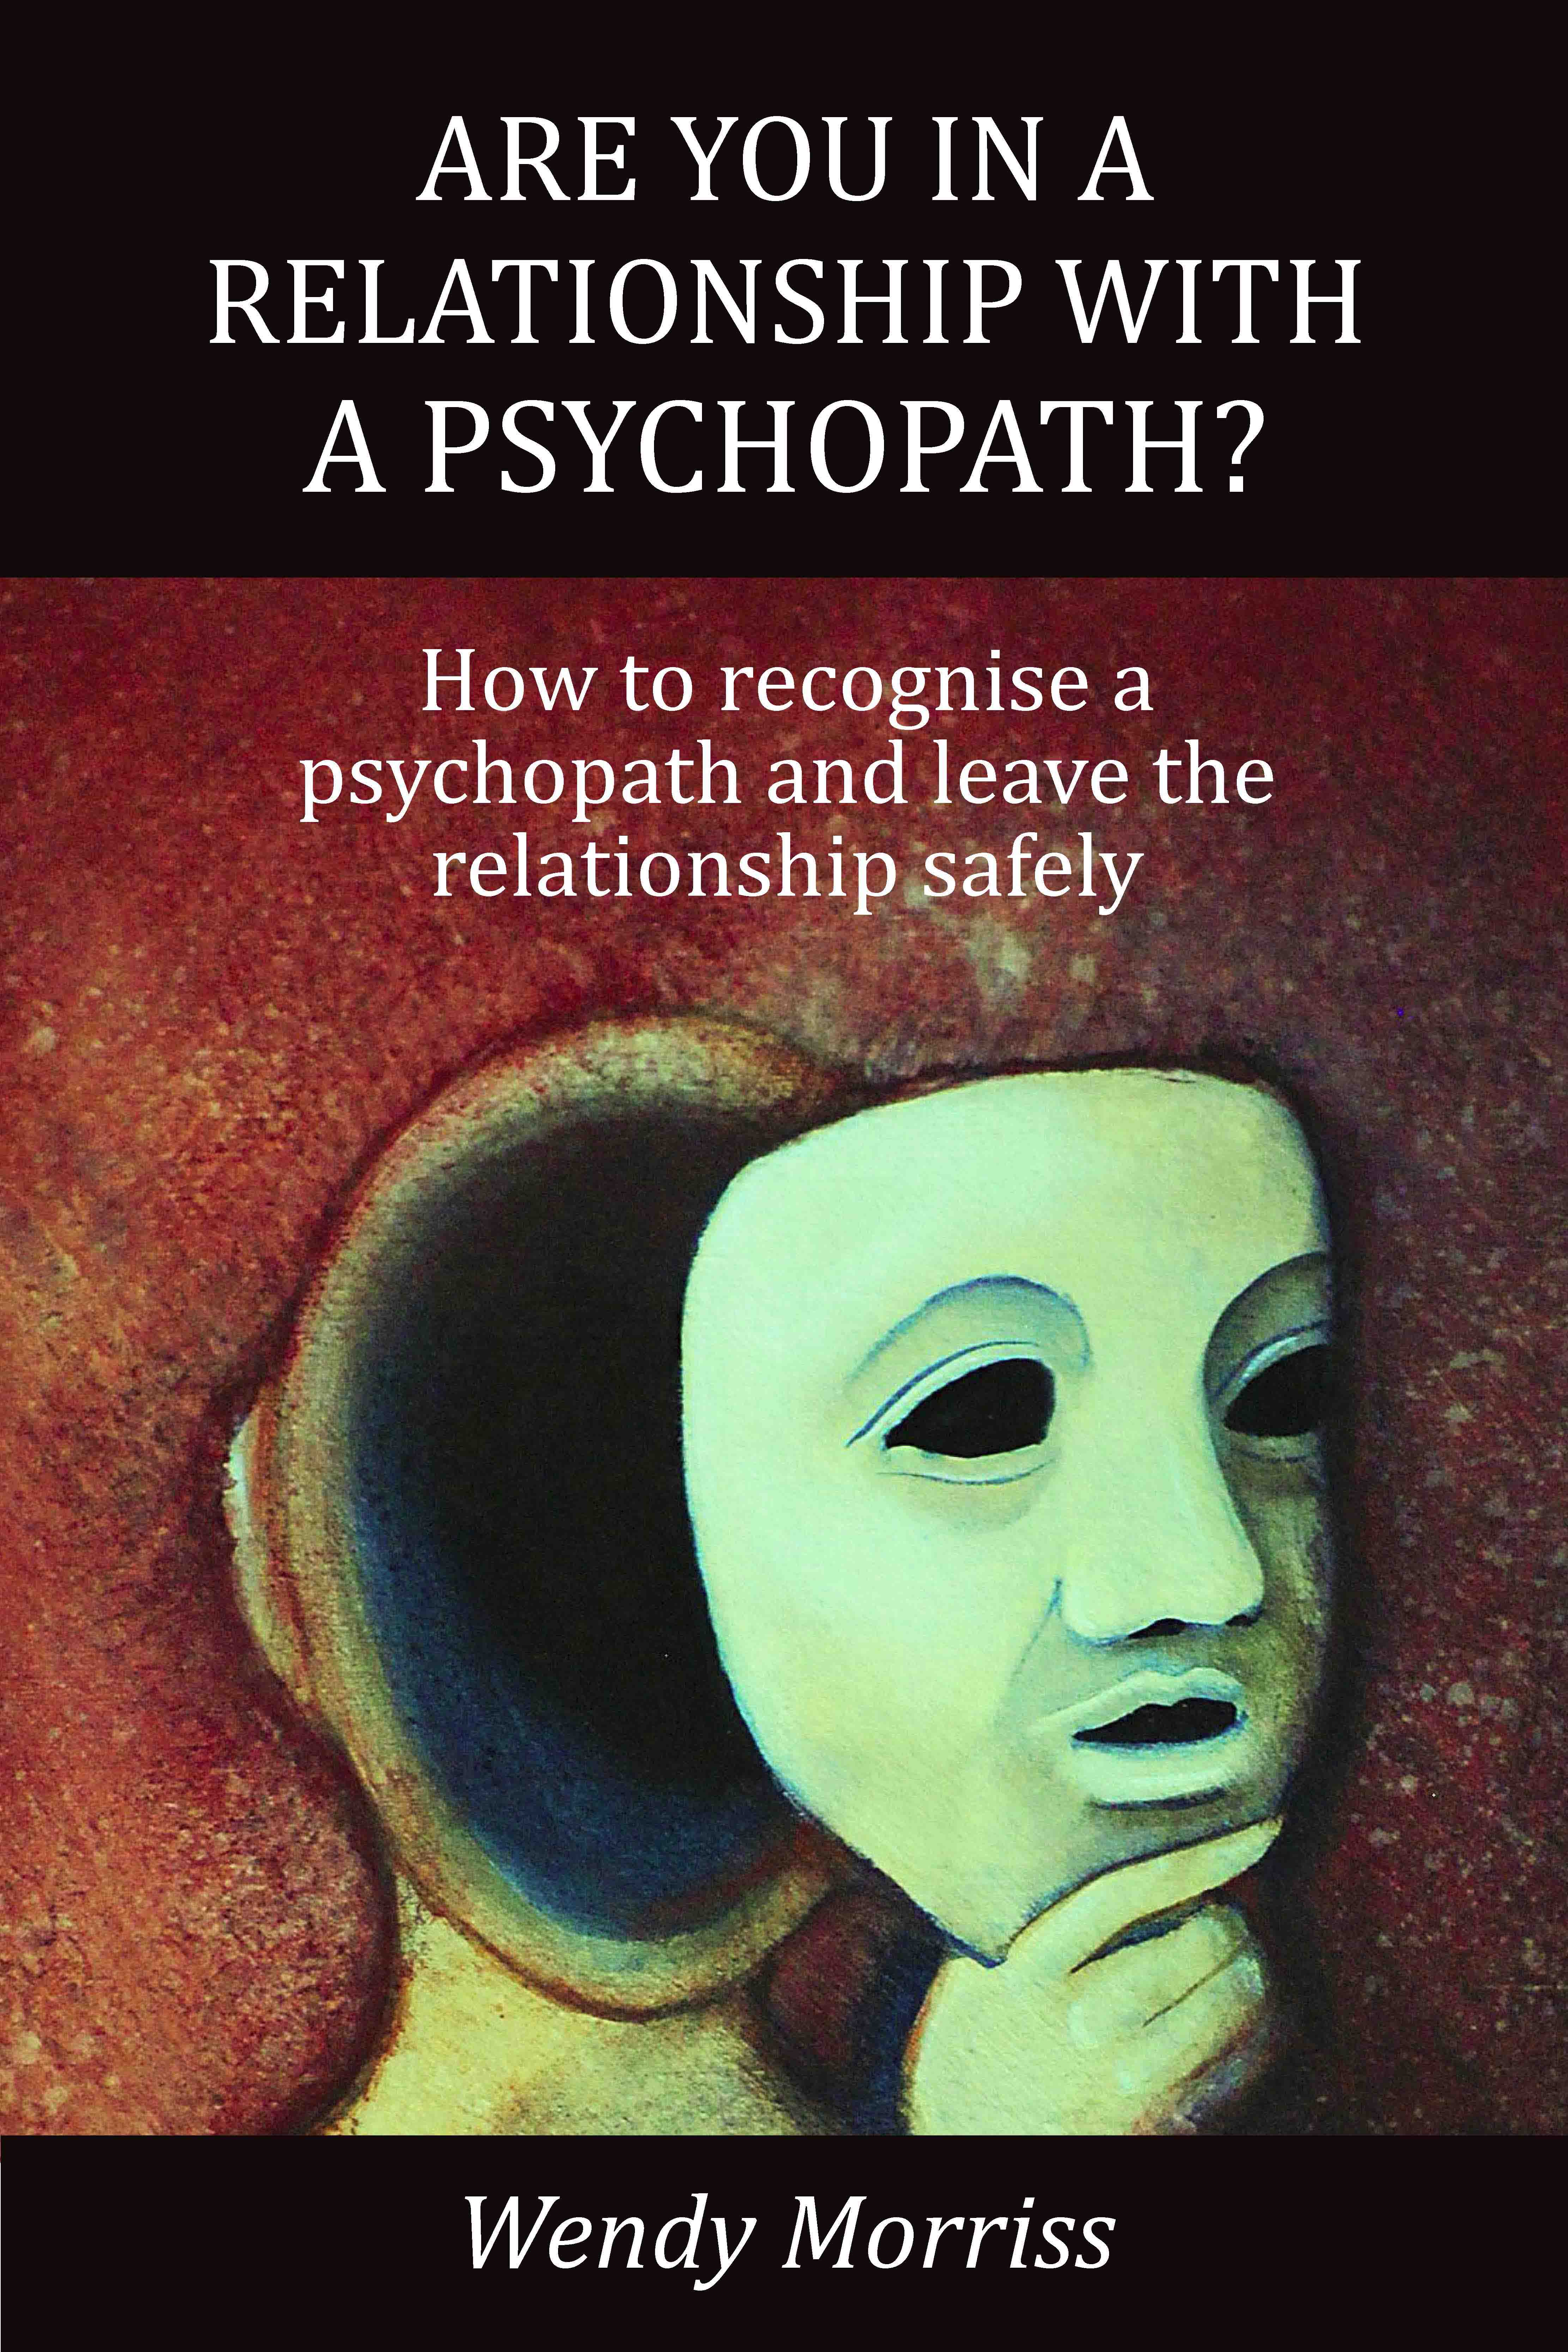 Are you in a relationship with a psychopath eBook